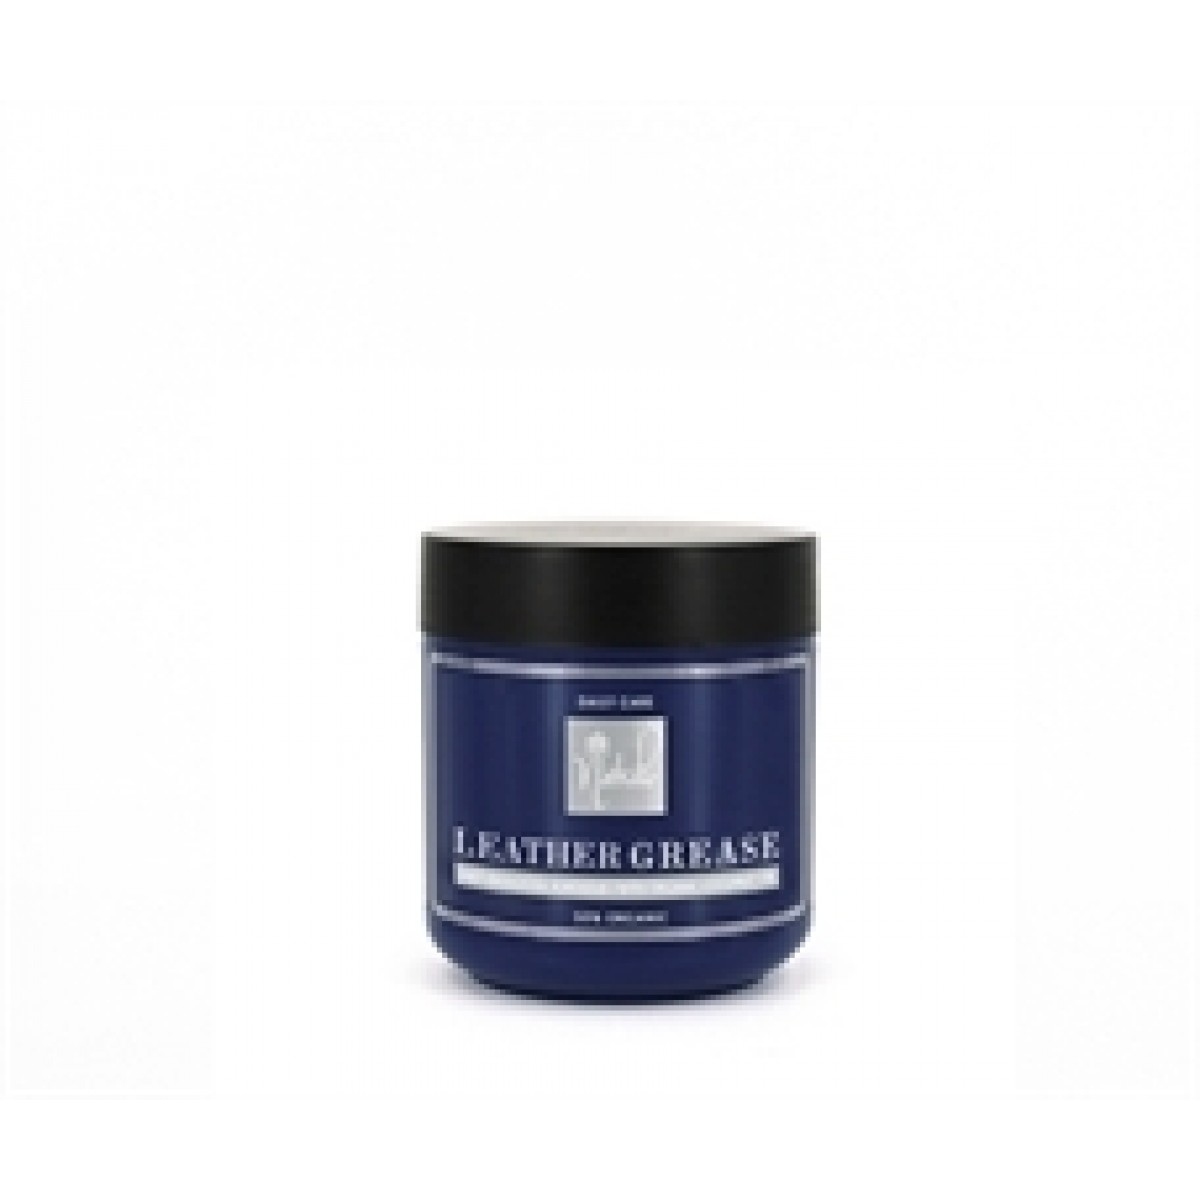 Nathalie Leather Grease